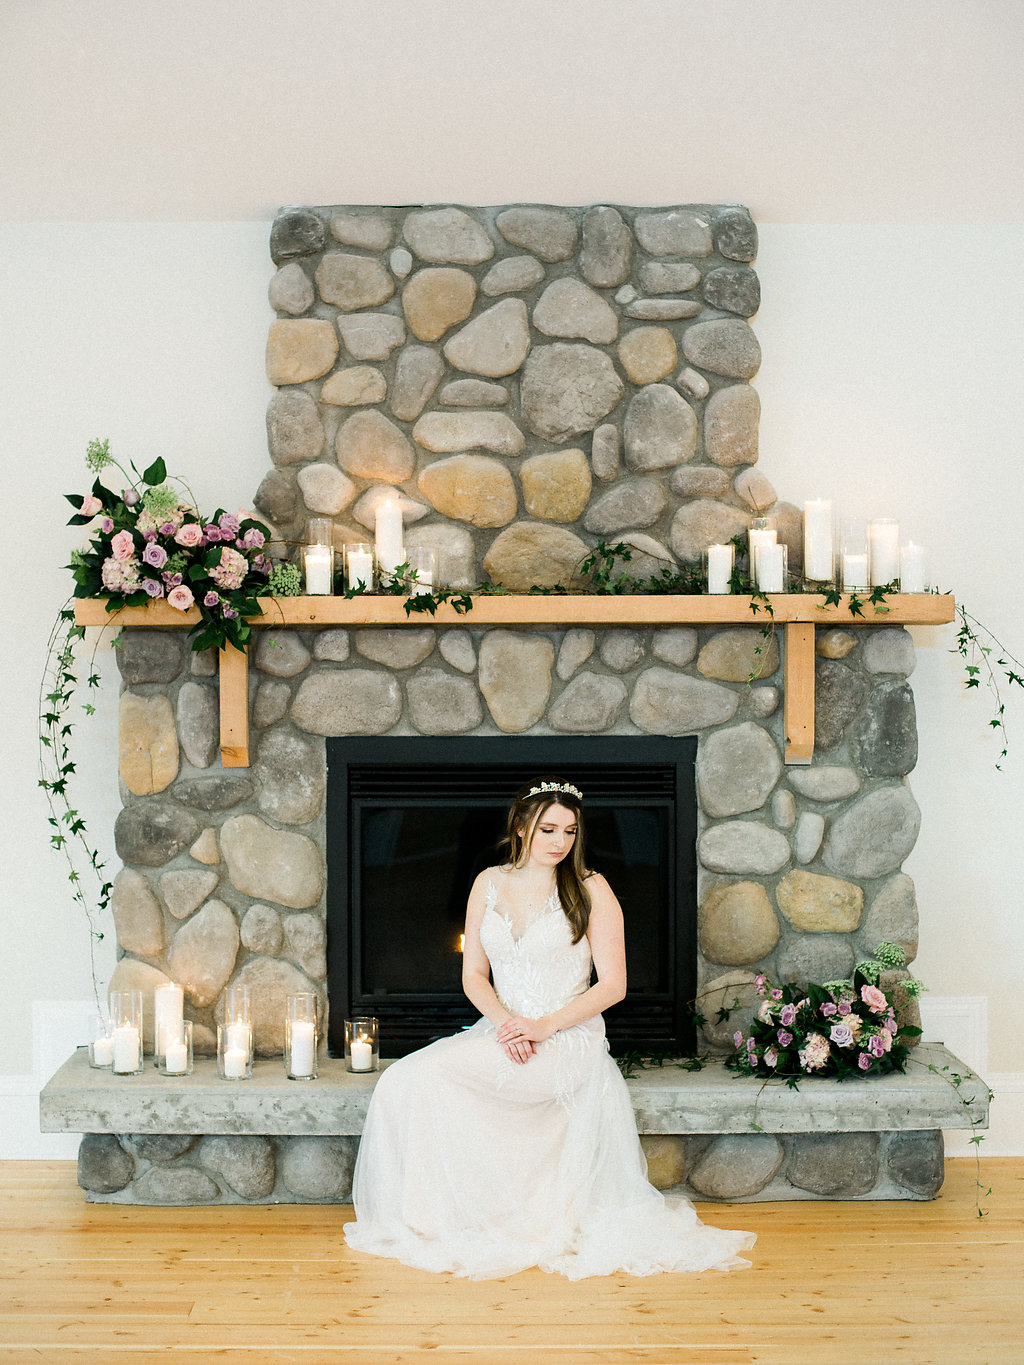 Wedding Fireplace Flower Arrangements - Whitetail Meadow Weddings